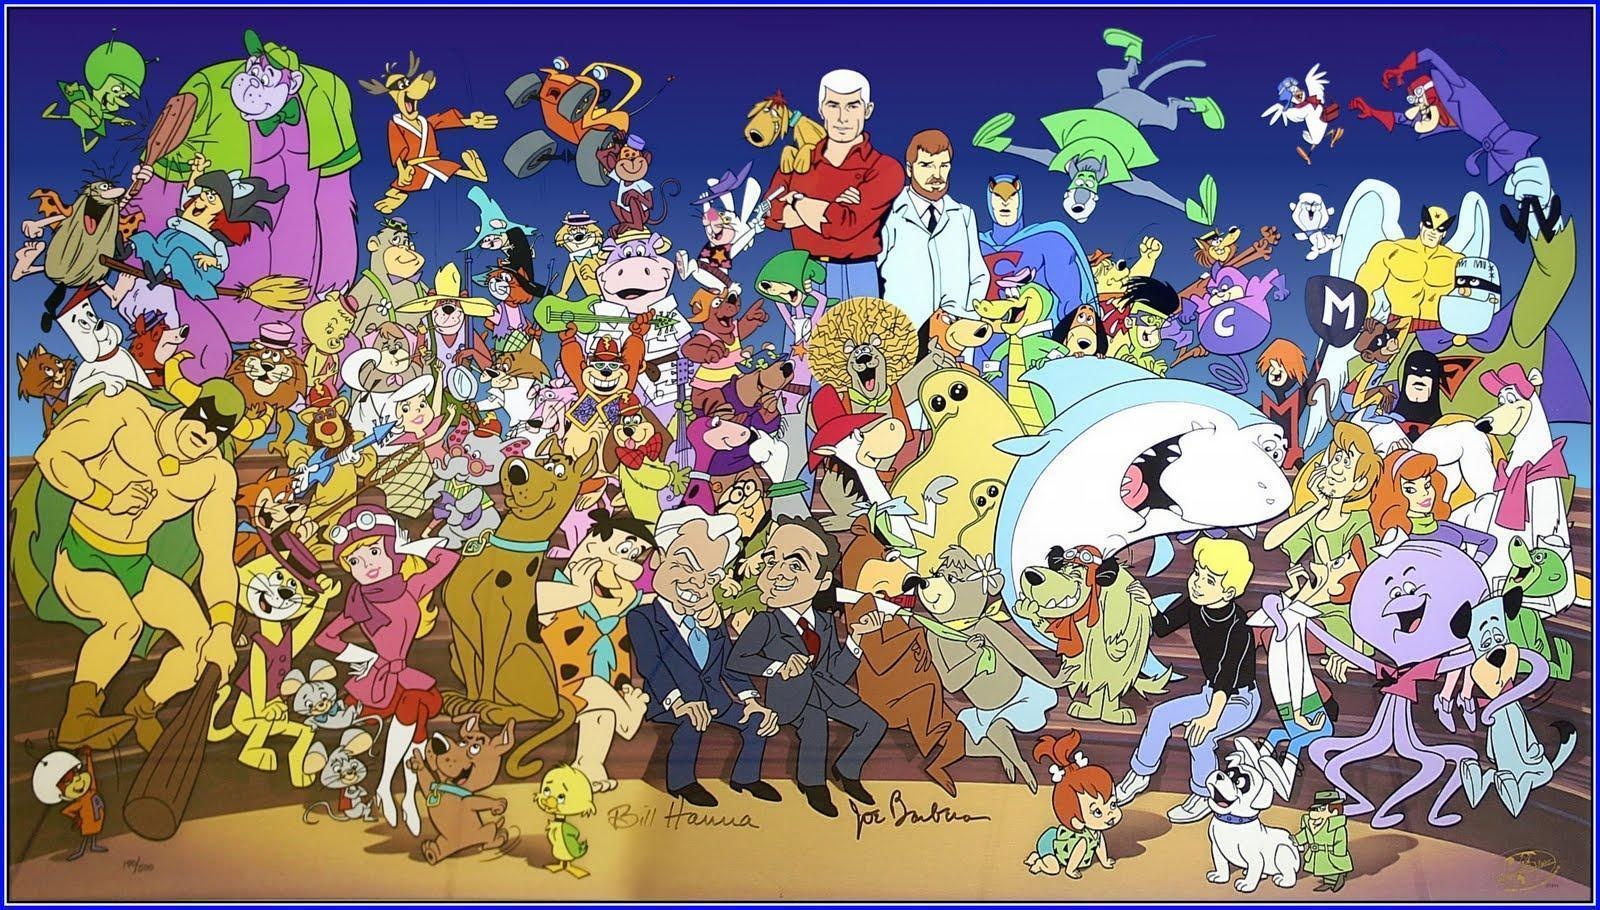 1000+ images about Hanna-Barbera Cartoon Characters on ... |Hanna Barbera Animals